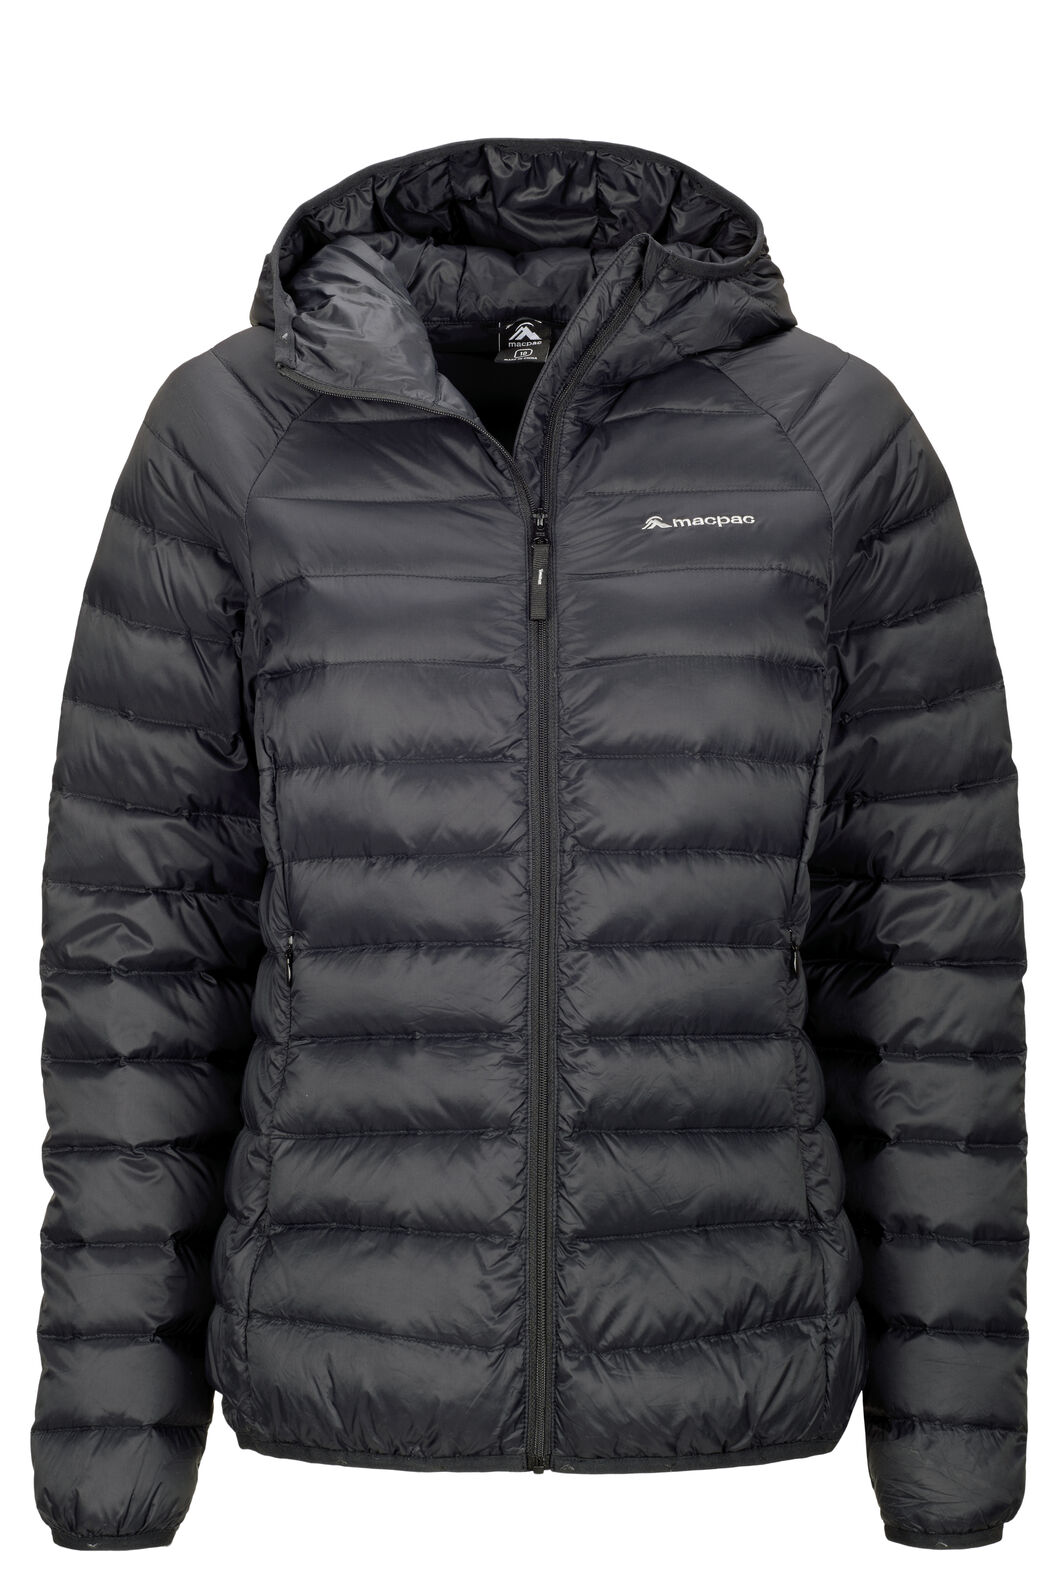 Macpac Uber Light Hooded Down Jacket — Women's, Black, hi-res